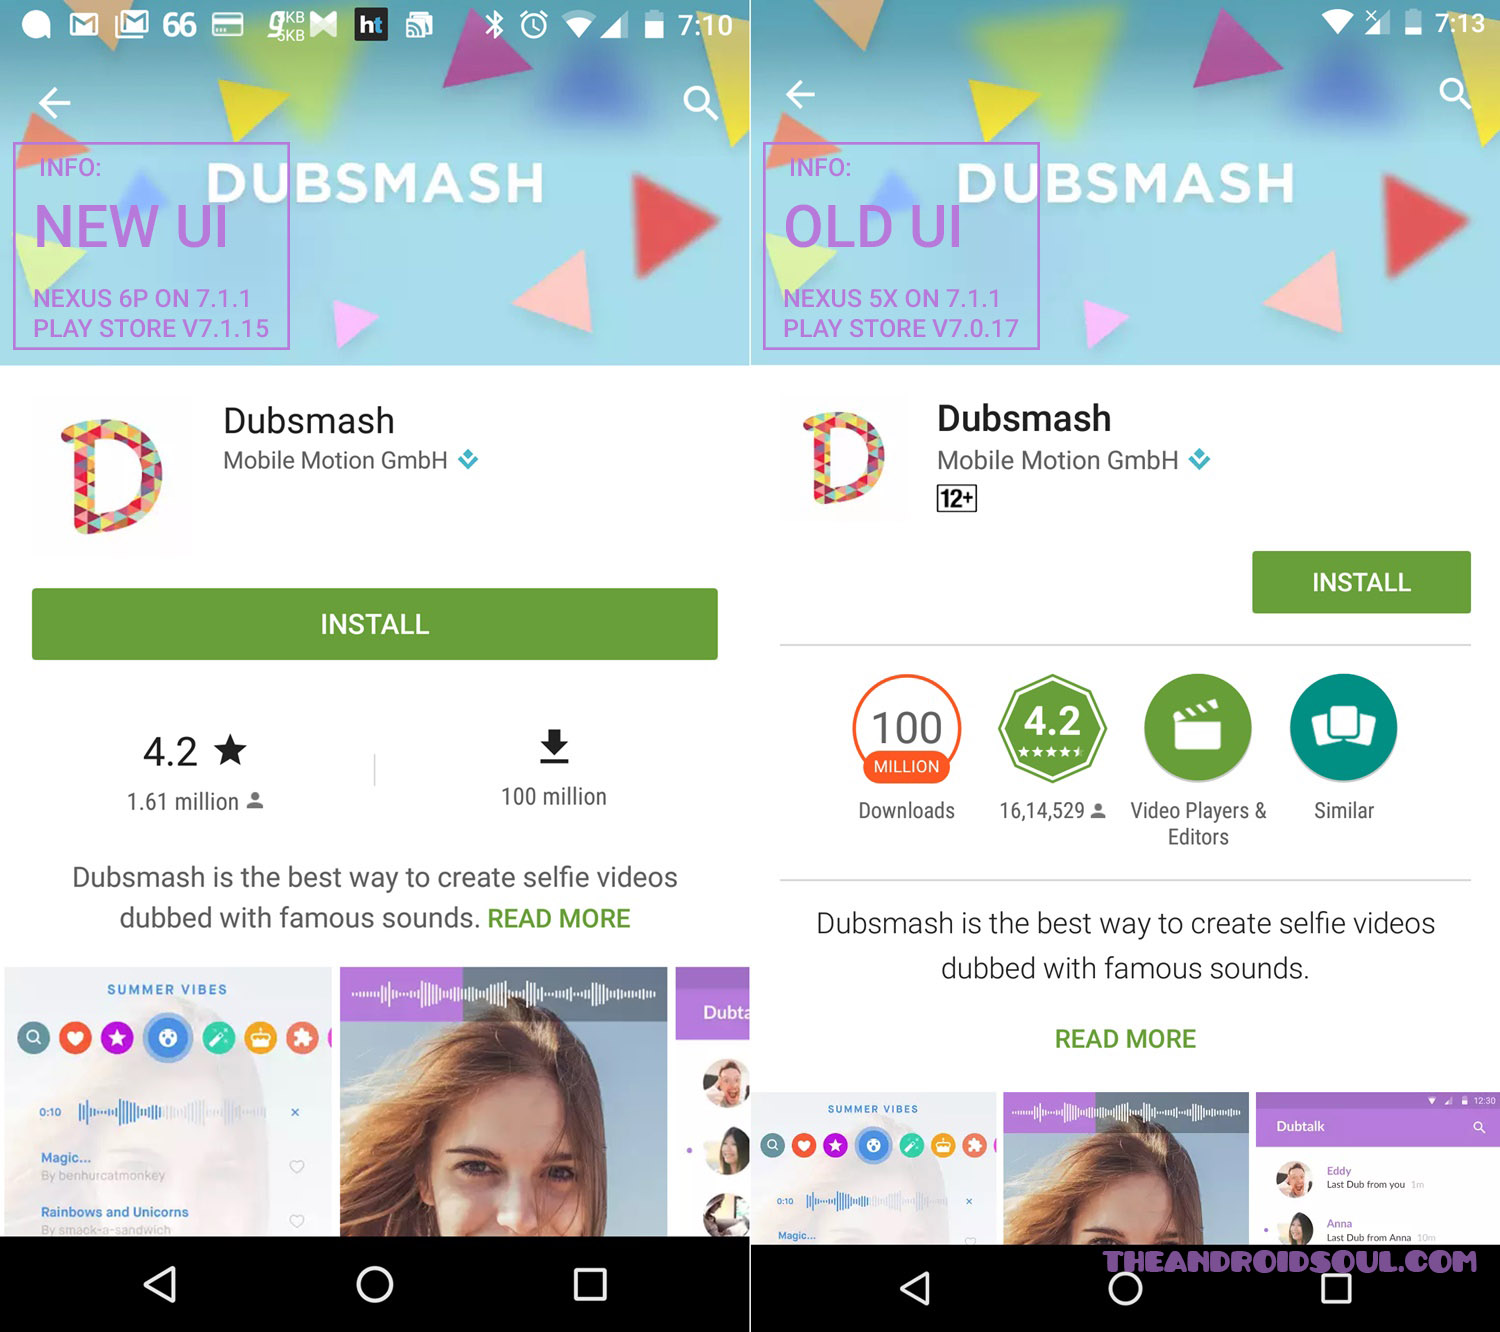 download google play store apk 5.3.6 free latest file for phones